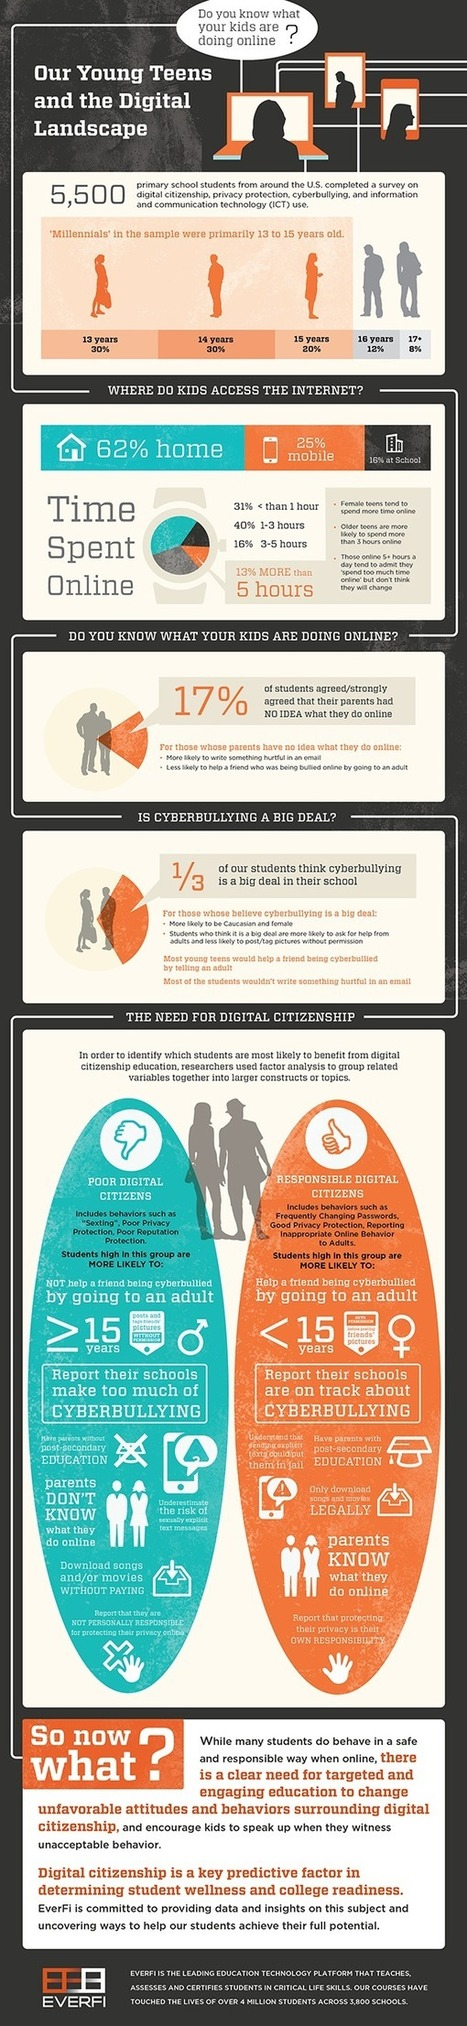 Case for Digital Citizenship - EverFi | School Libraries Create 21st Century Digital Citizens | Scoop.it